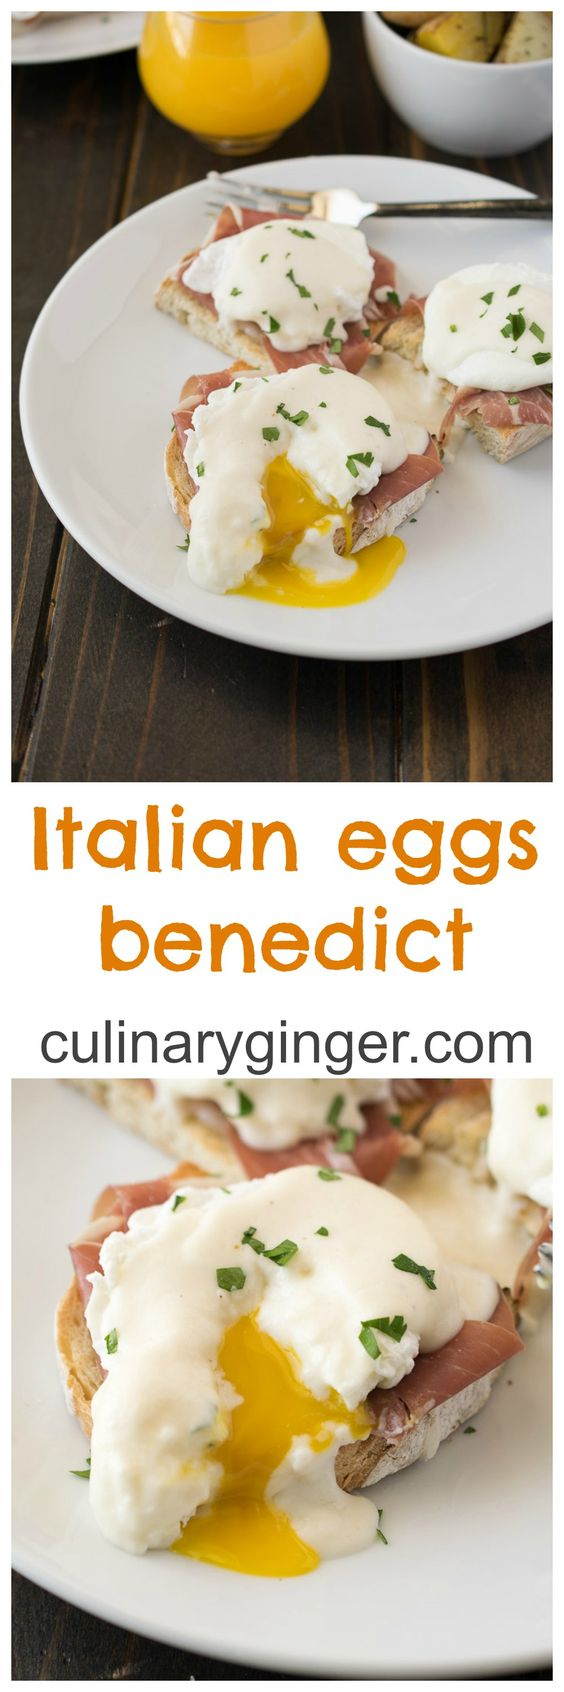 Italian eggs benedict is based on the classic eggs benedict with a couple of substitutions. Prosciutto instead of ham, parmesan sauce instead of hollandaise and ciabatta instead of English muffins.